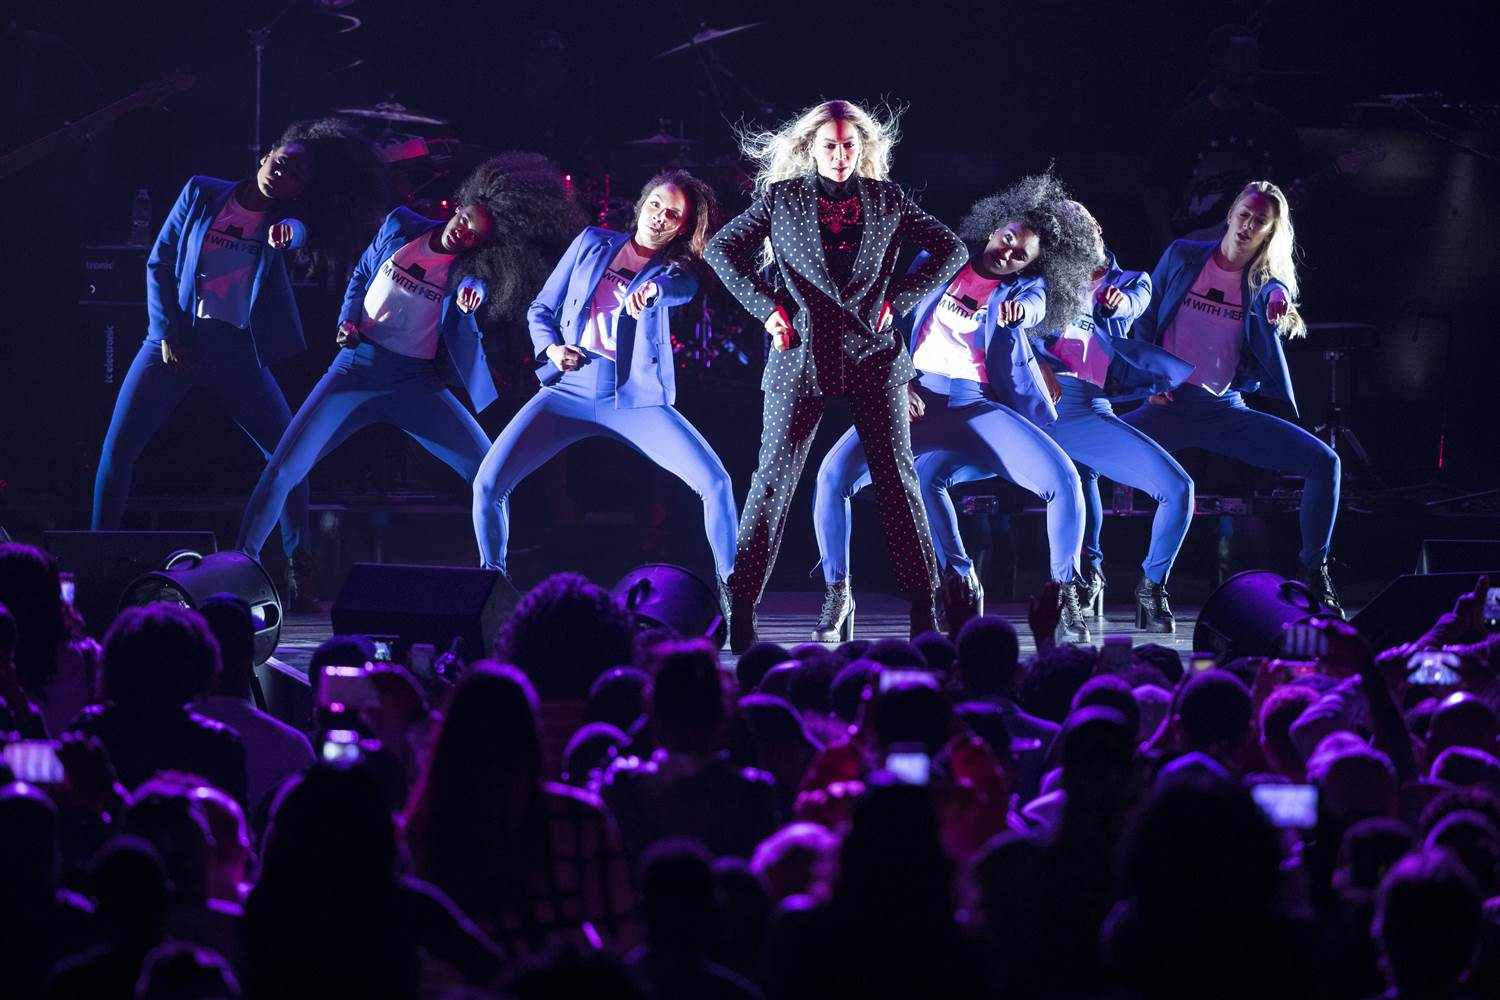 Beyoncé performed at a Get Out the Vote concert for Hilary Clinton, referencing Clinton's iconic look by costuming her backup dancers in blue pantsuits.